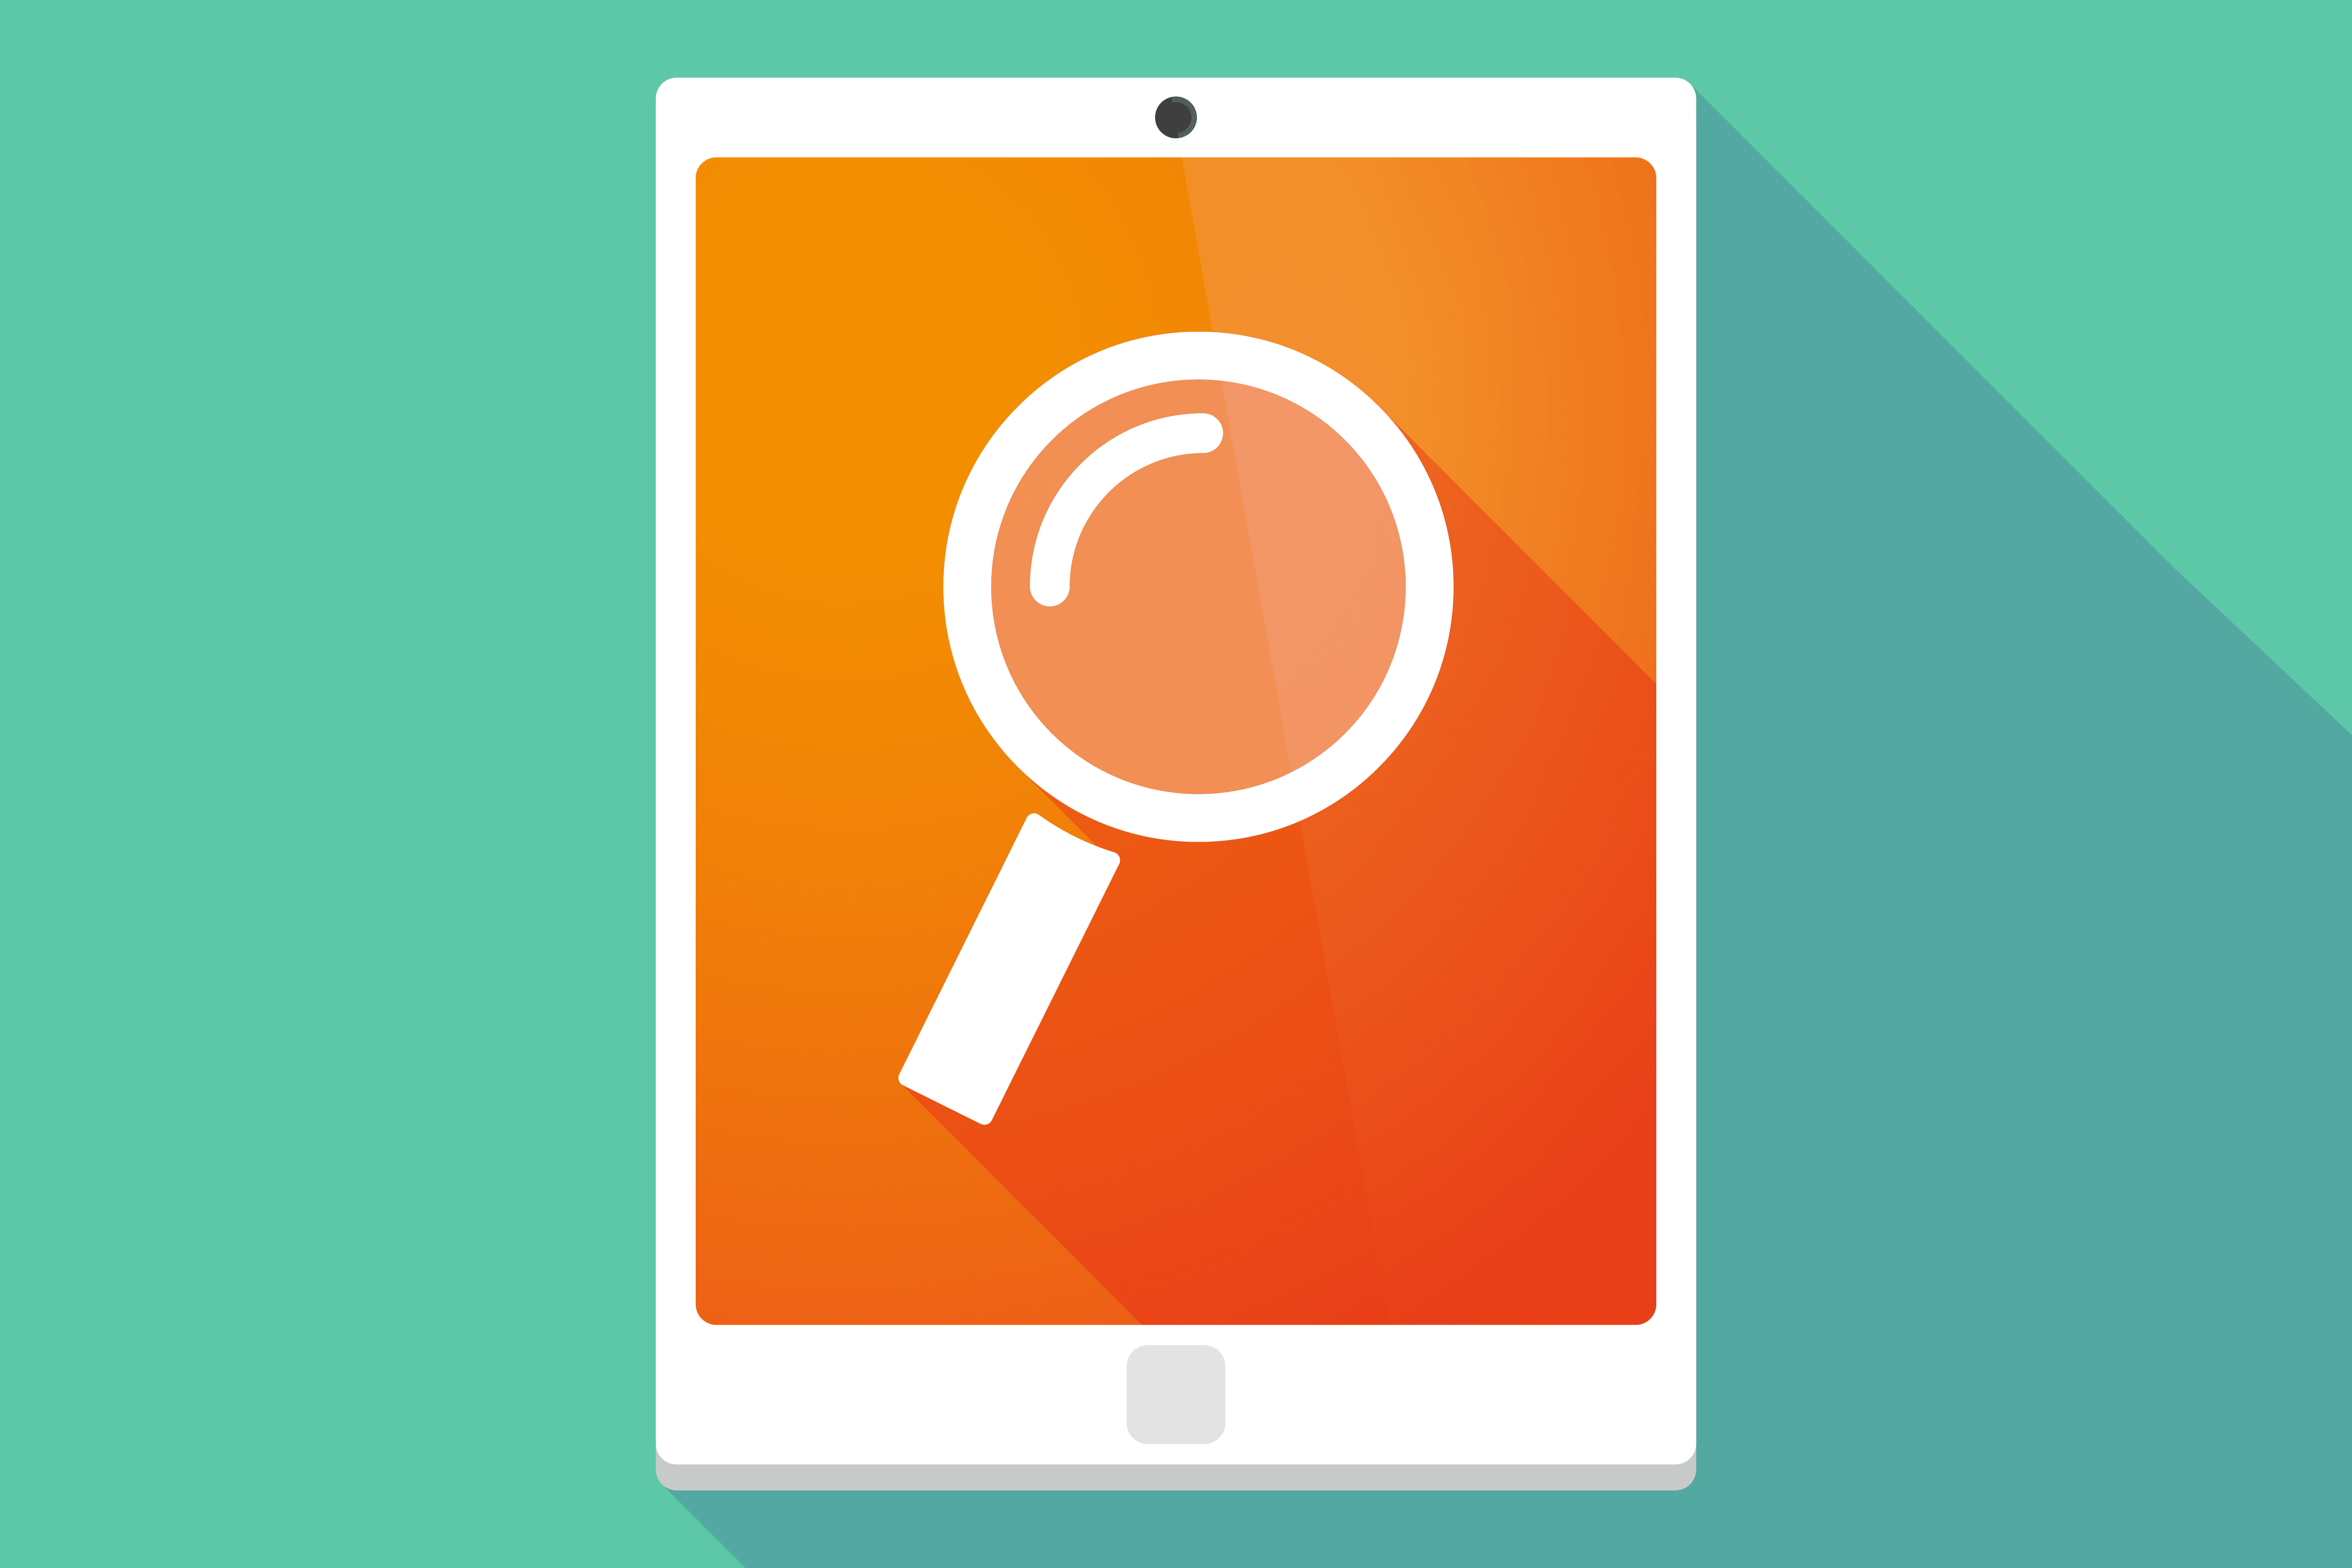 iPad with magnifying glass